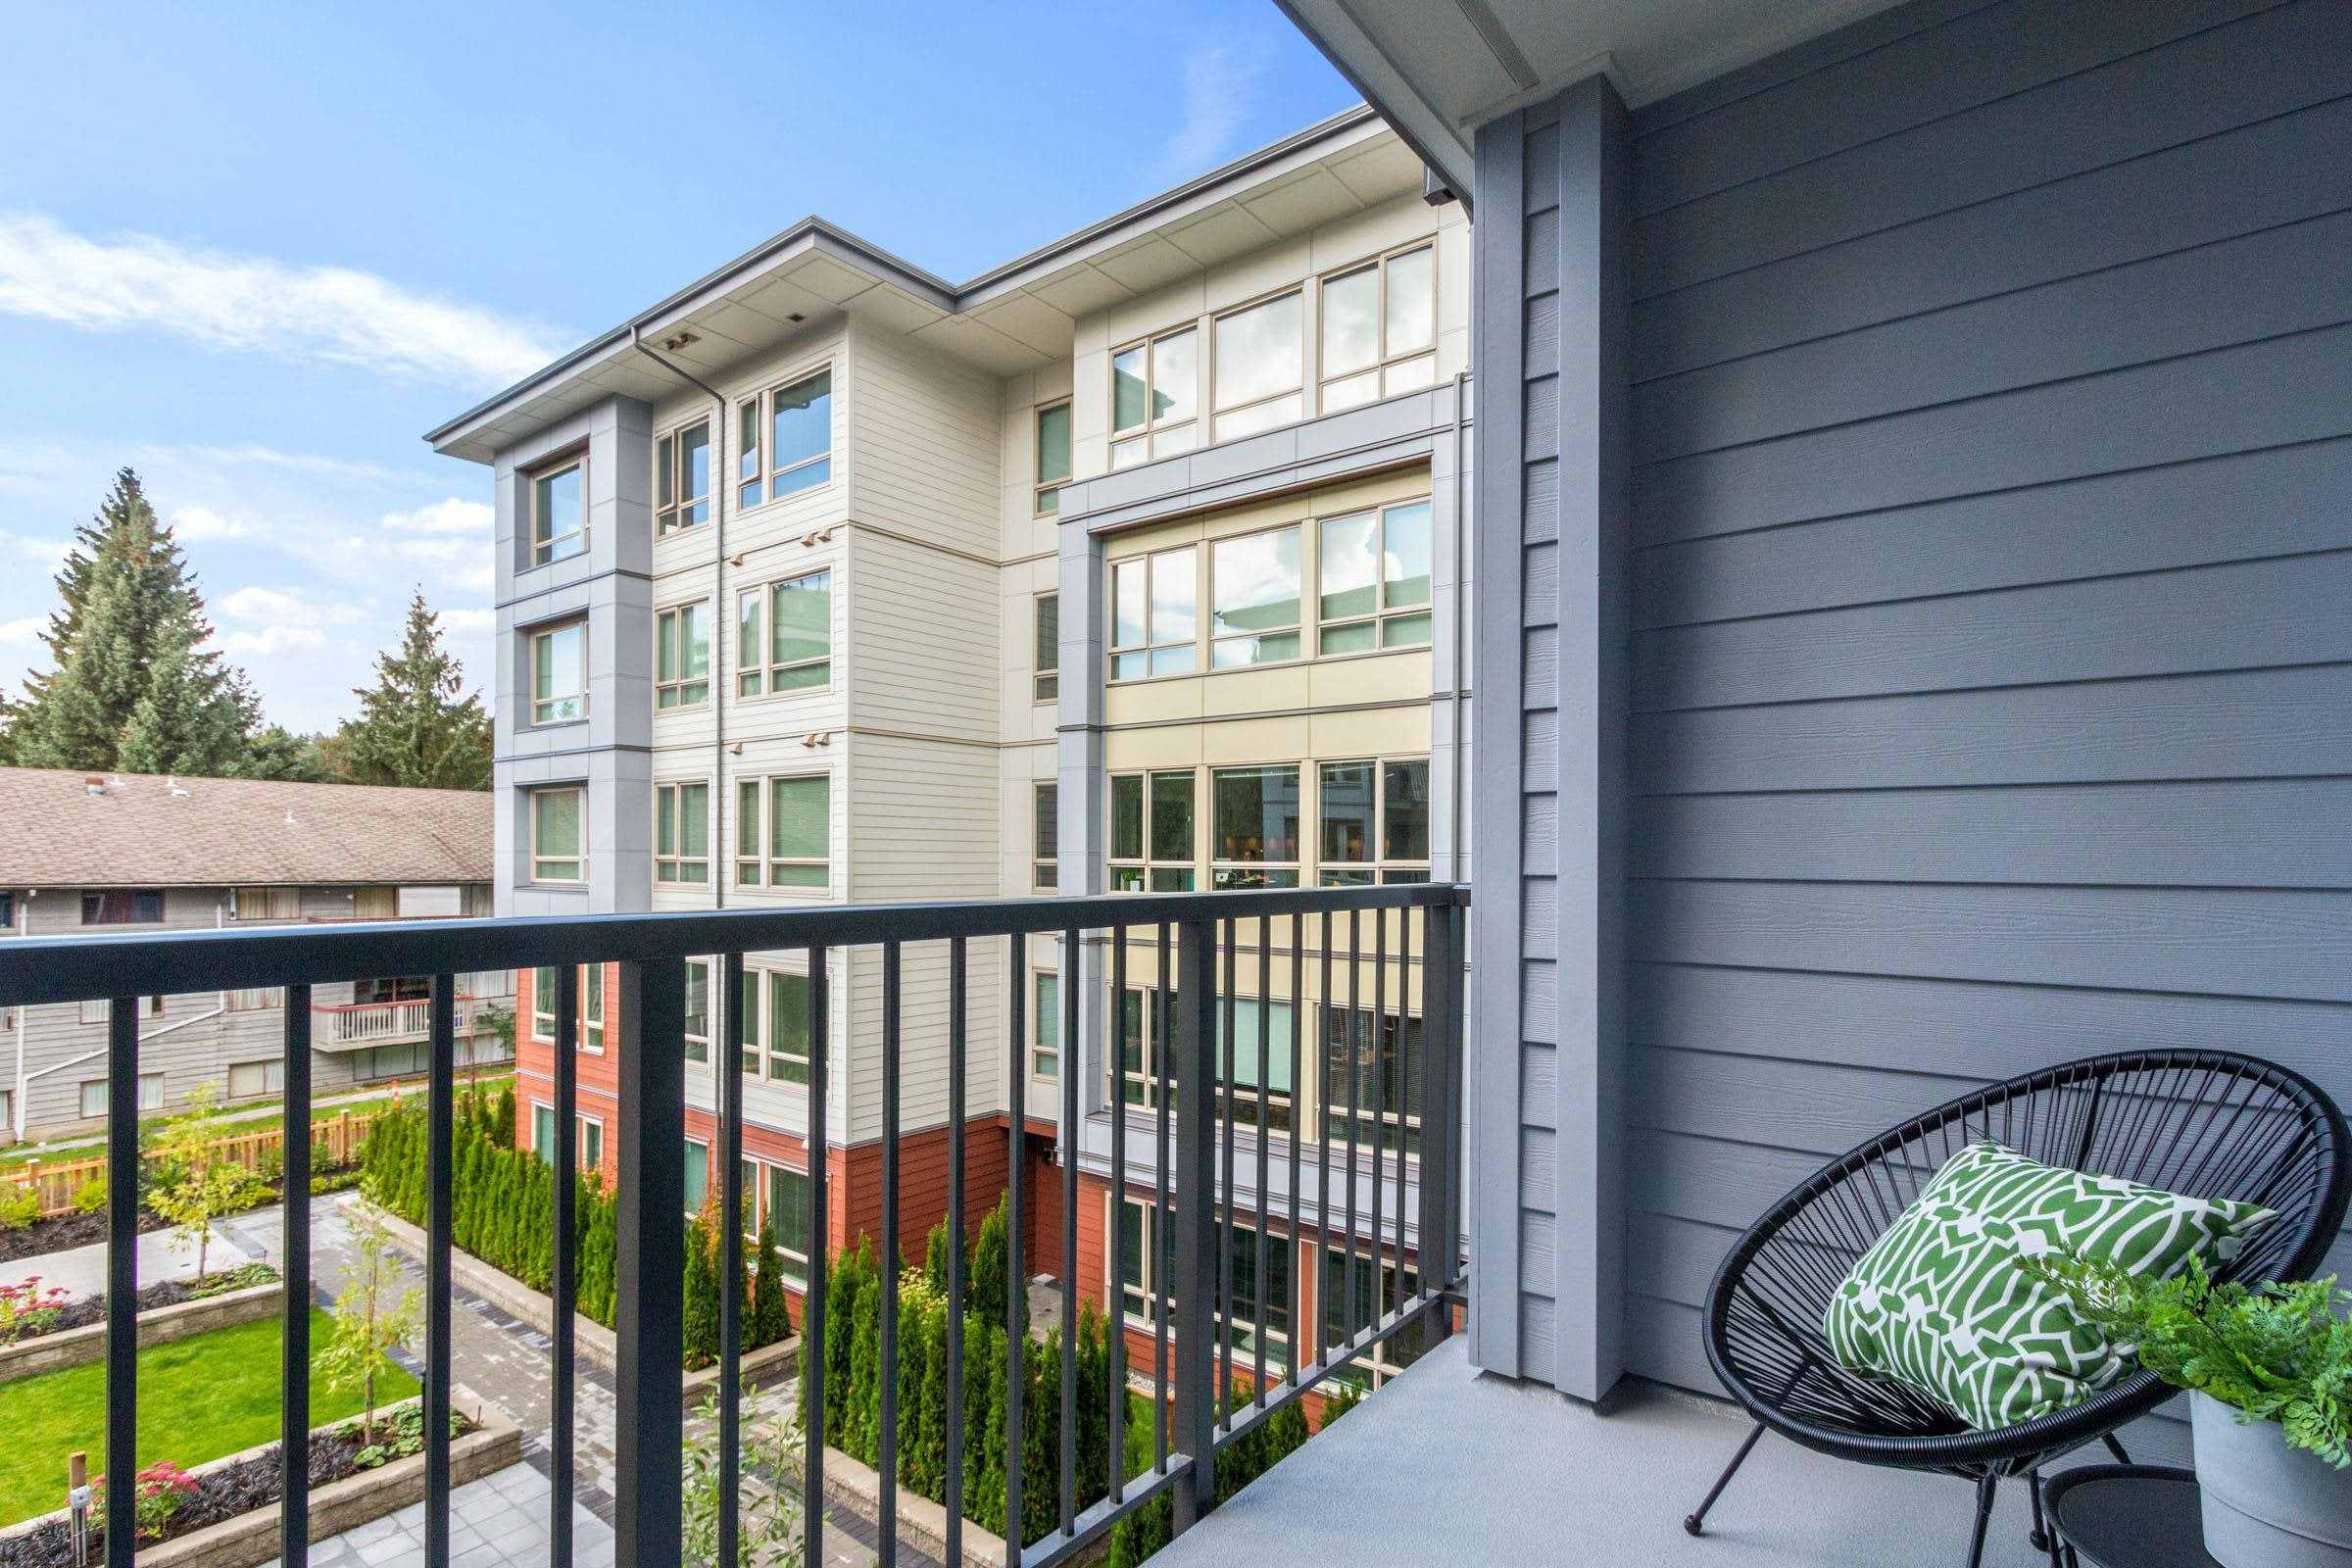 316 2651 LIBRARY LANE - Lynn Valley Apartment/Condo for sale, 2 Bedrooms (R2622878) - #19